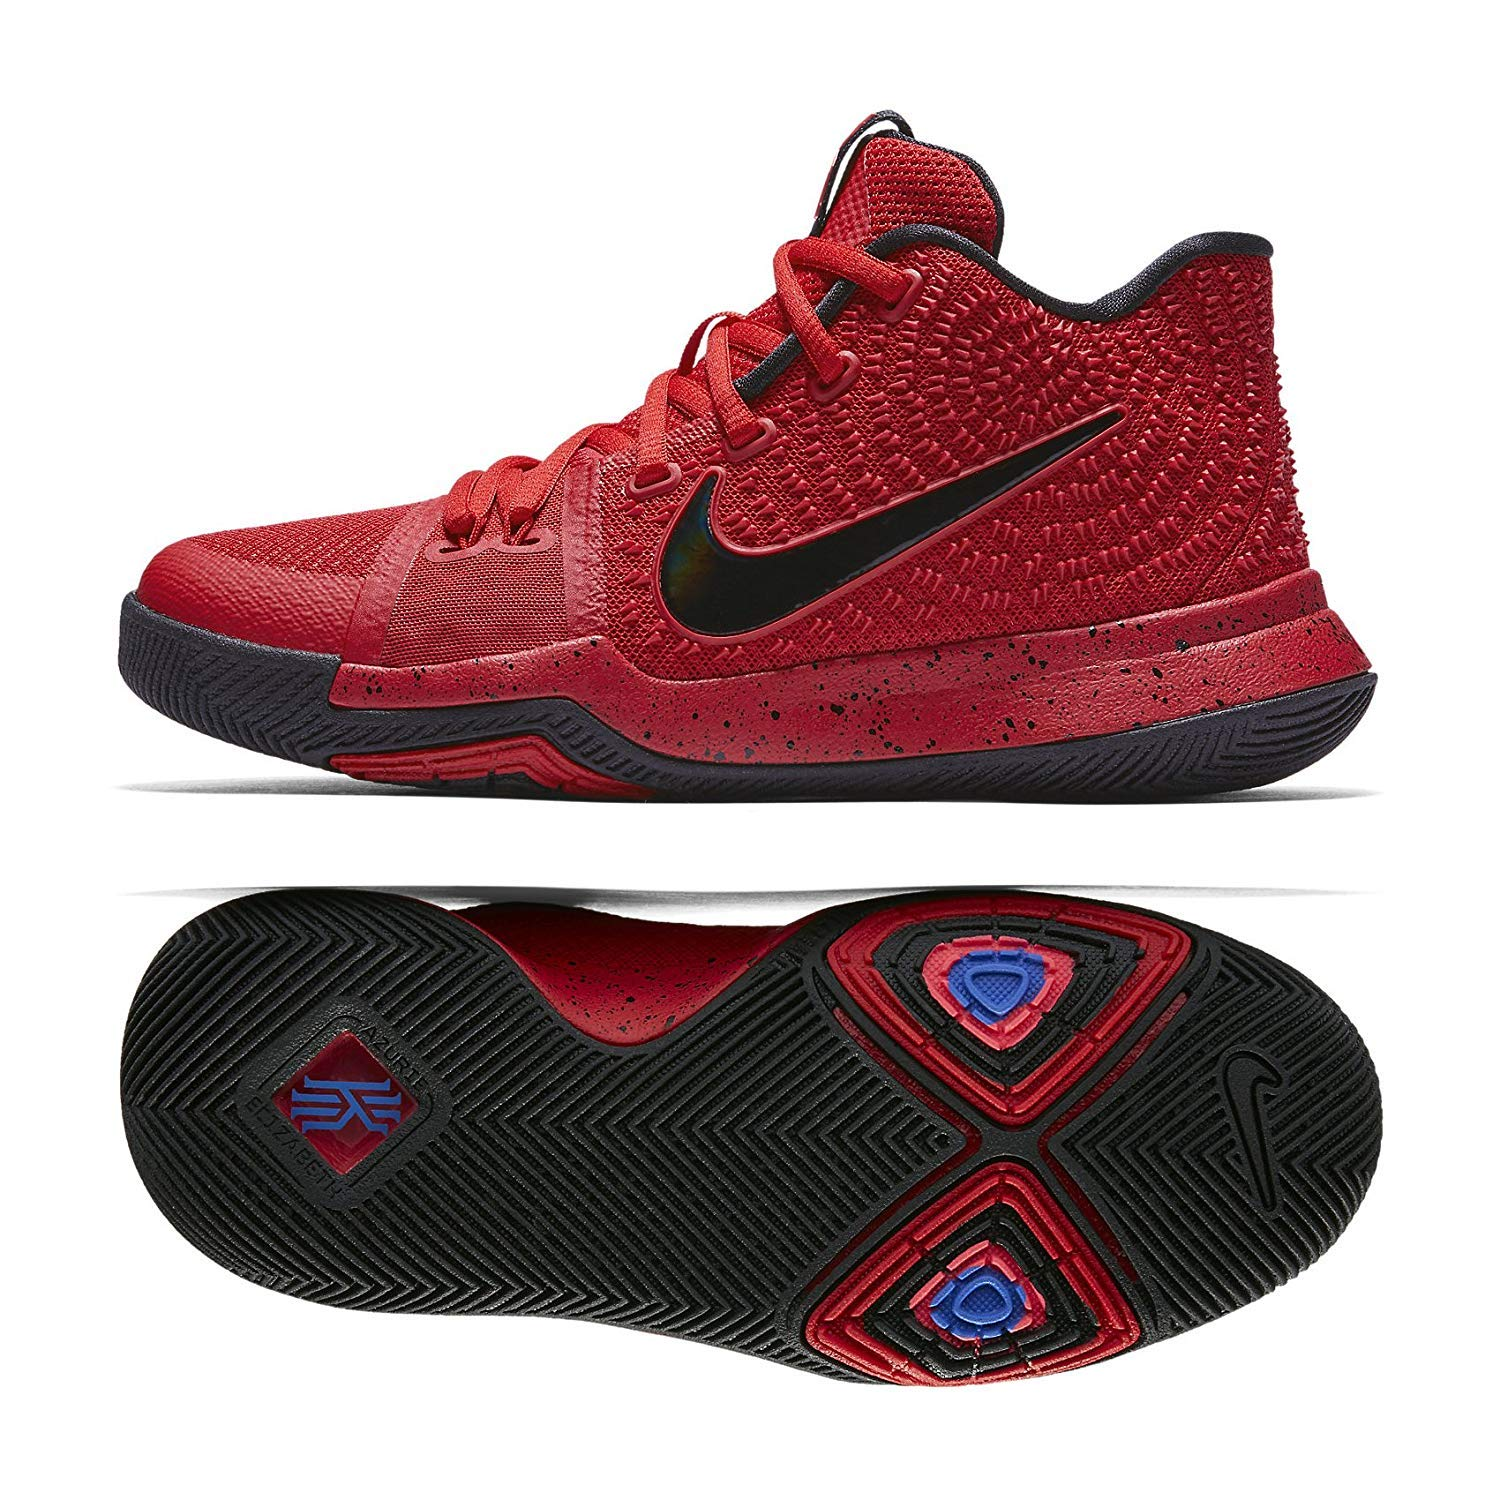 super popular ff90e ec5e4 Nike Kyrie 3 (GS) 859466 600 University Red/Black/Team Red Kids Basketball  Shoes (7Y)